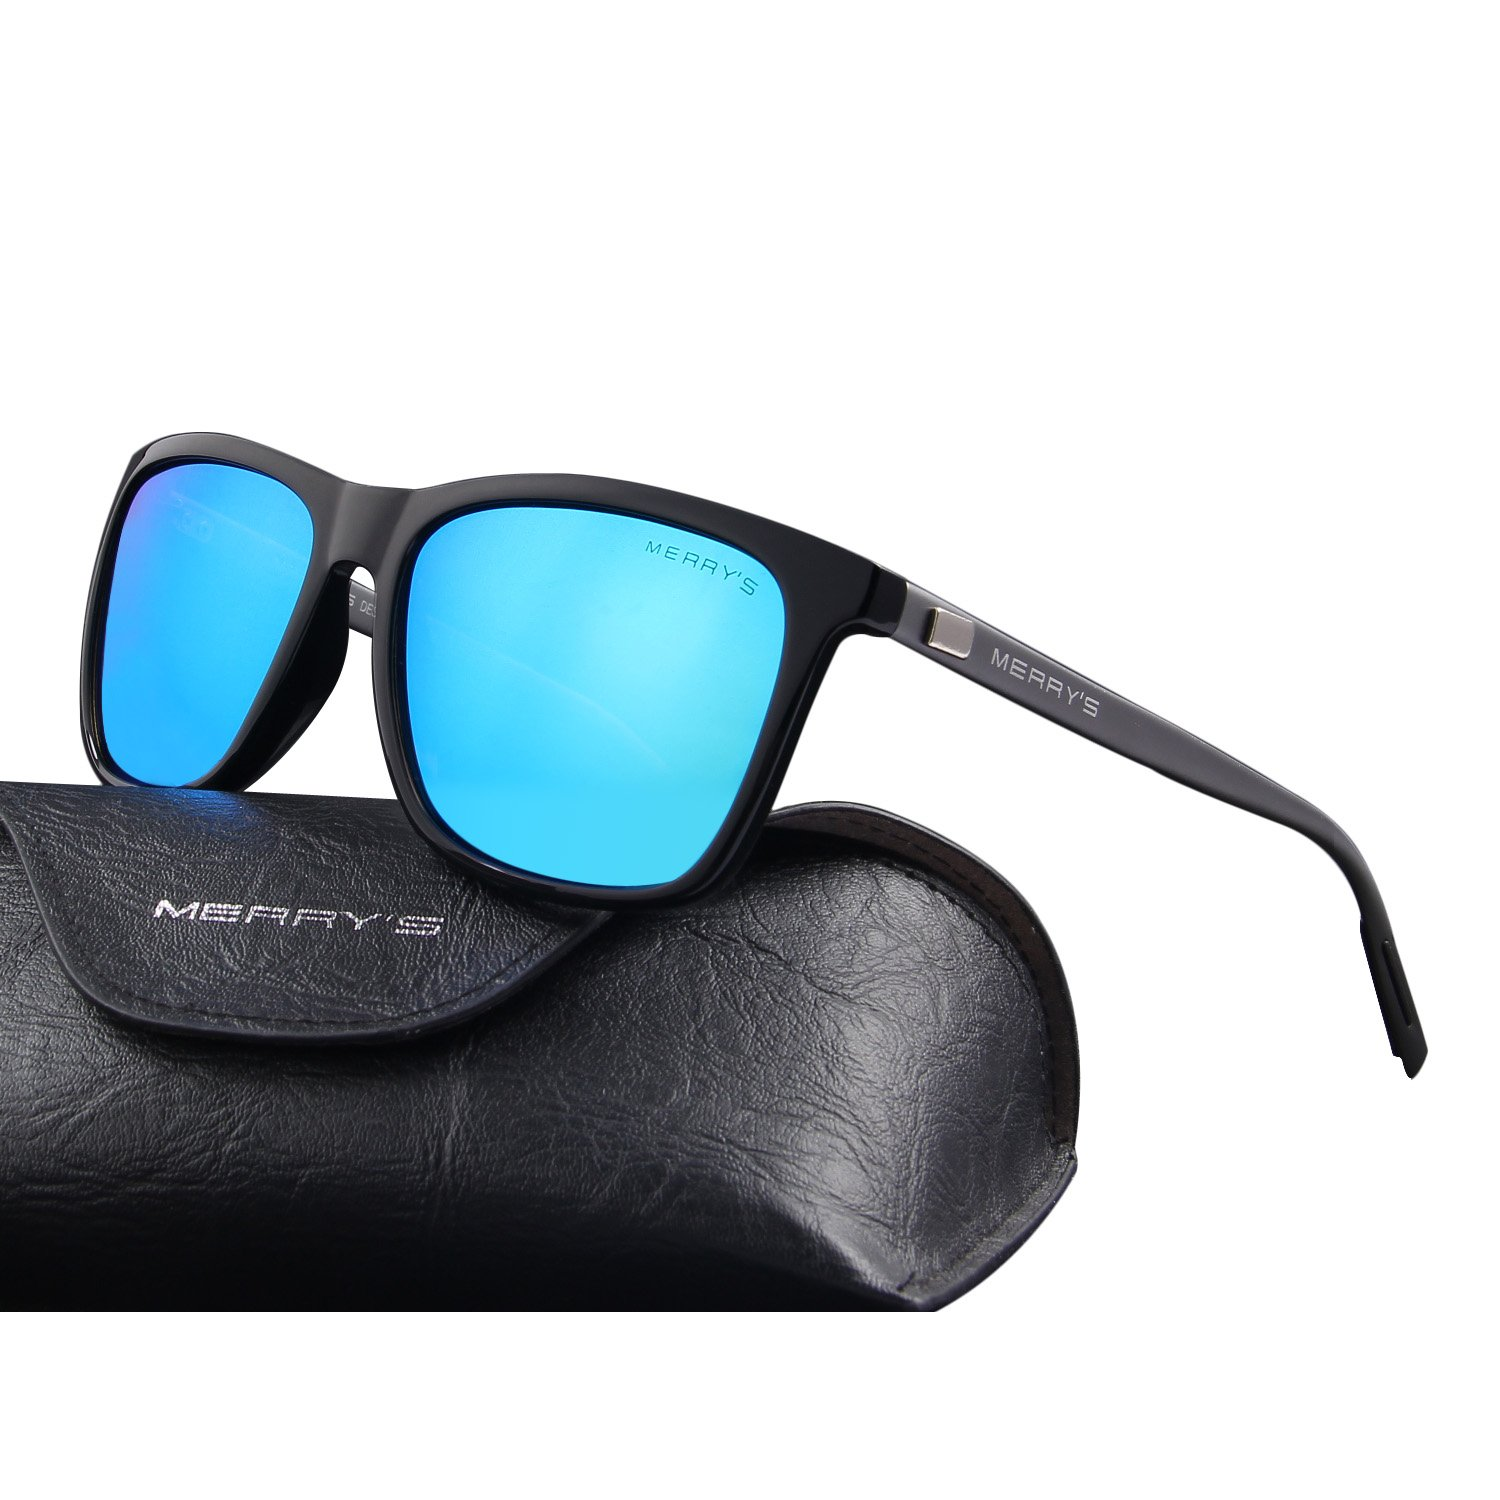 fb0a1ad641 MERRY S Unisex Polarized Aluminum Sunglasses Vintage Sun Glasses For ...